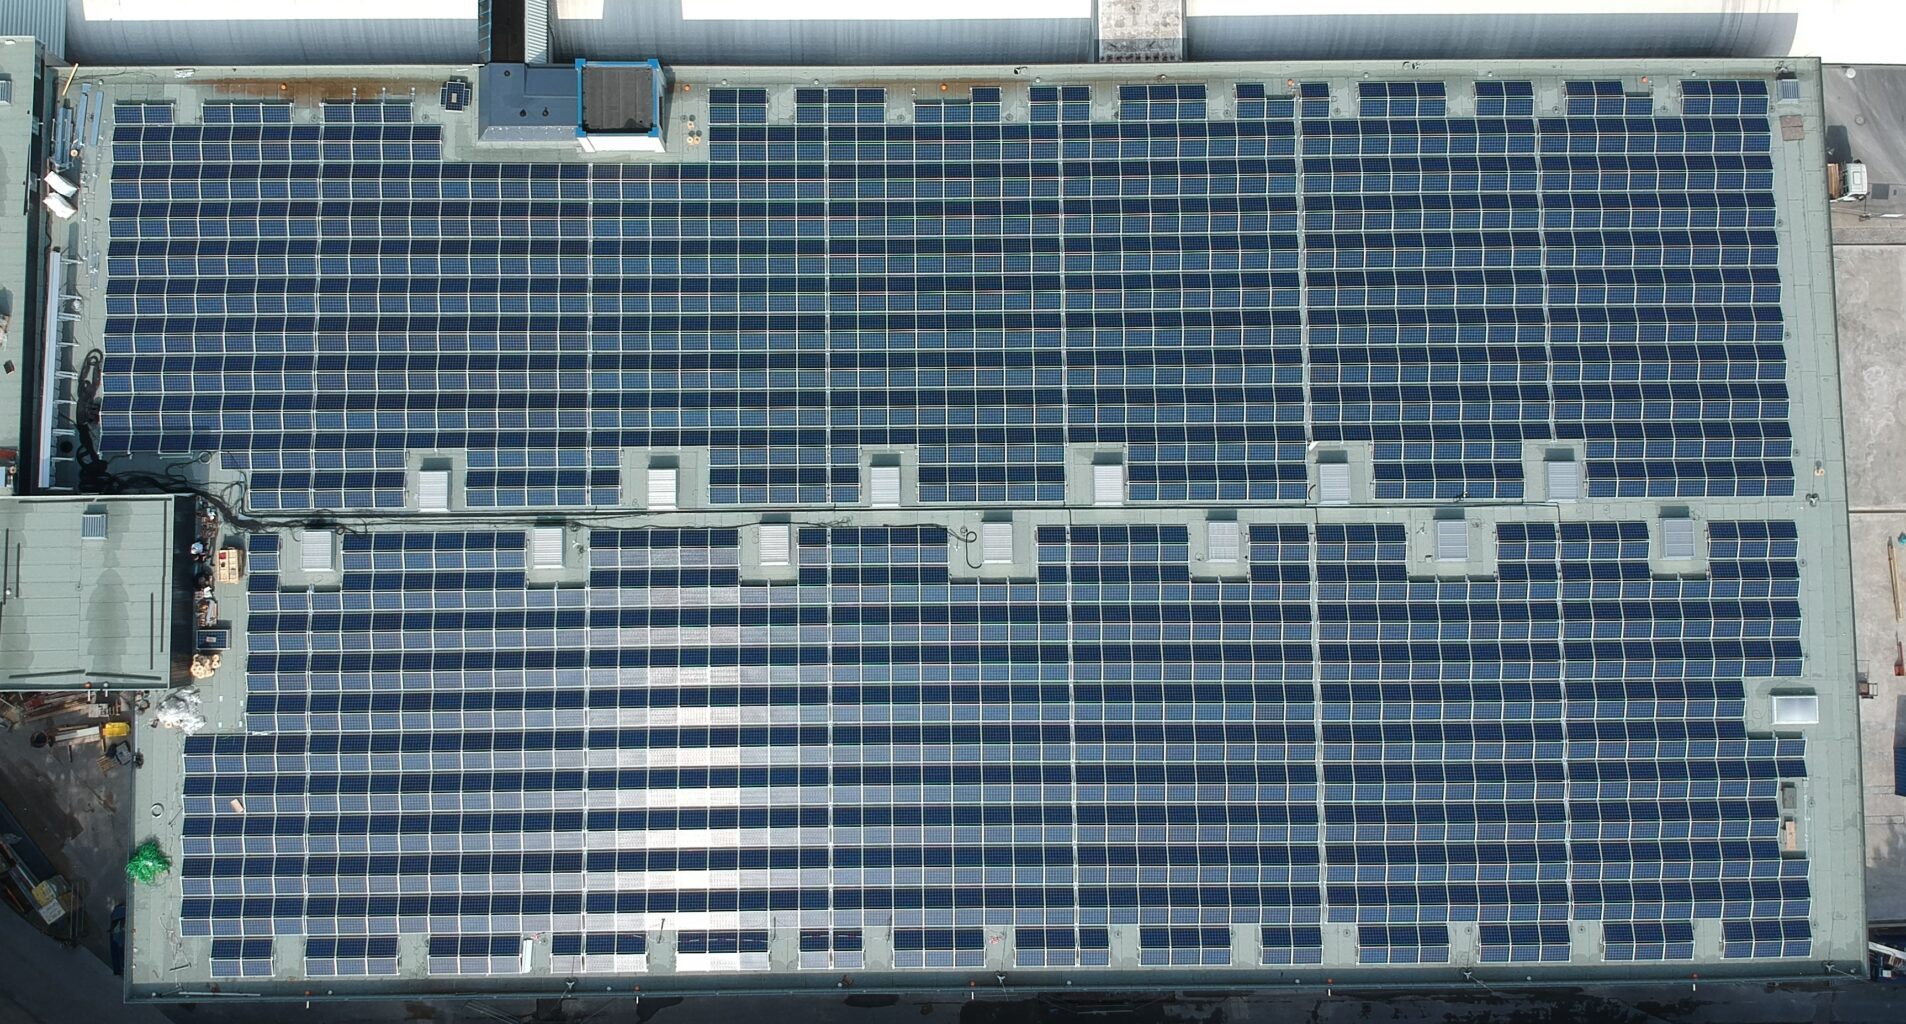 595,55 kWp in Paderborn